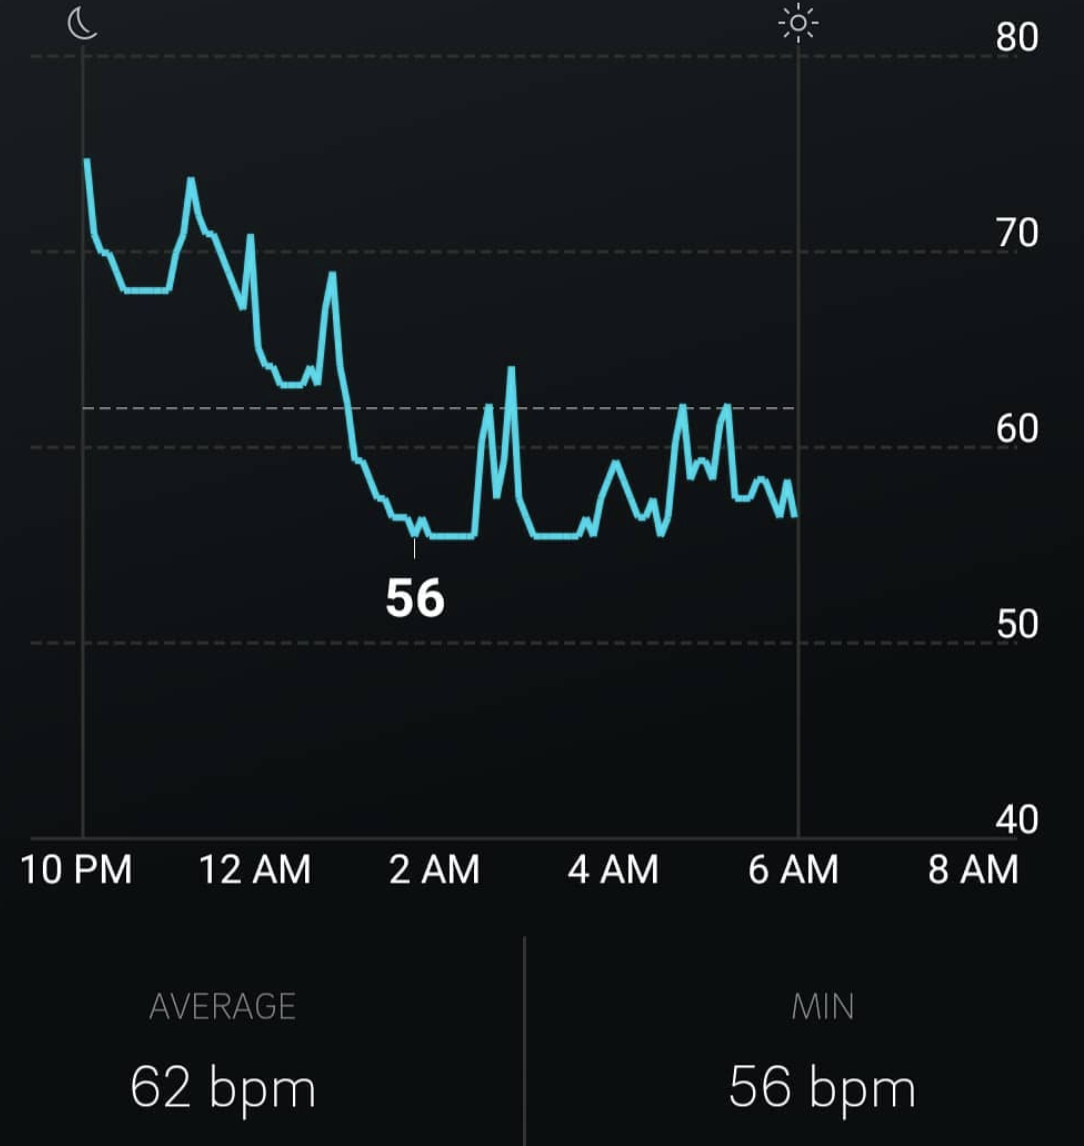 Dom's elevated heart rate  during sleep following just 2 small late-night glasses of wine.